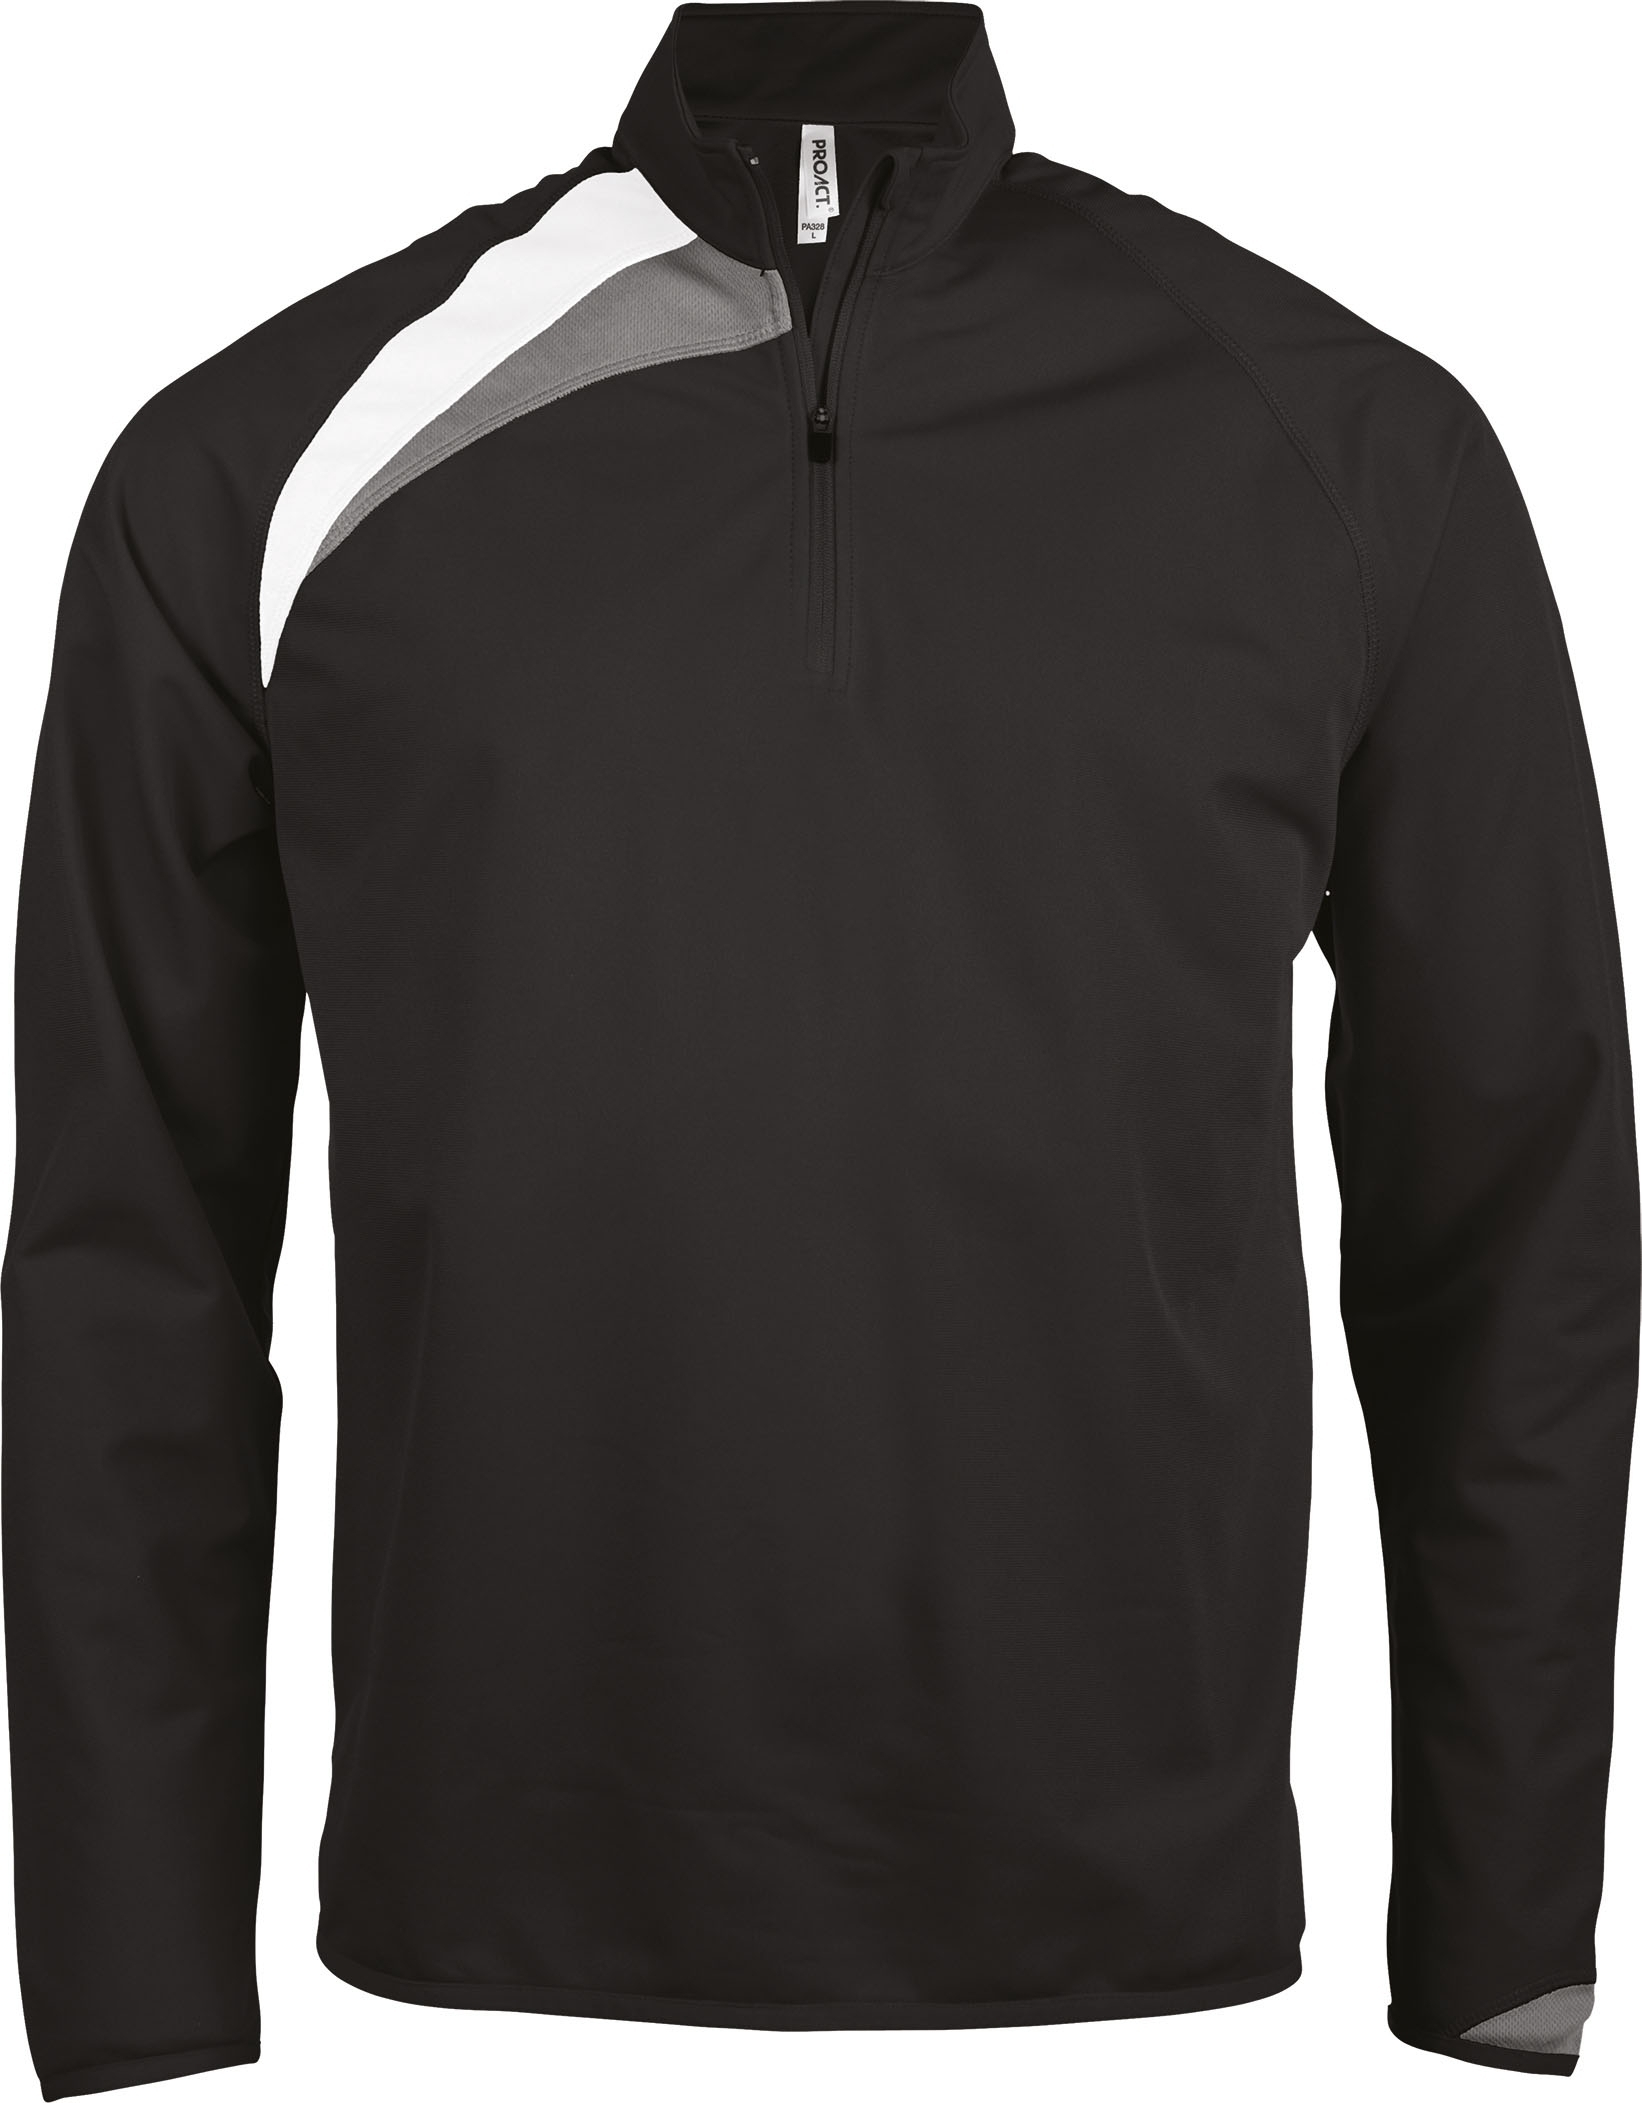 SWEAT DENTRAÎNEMENT 1/4 ZIP UNISEXE Black / White / Storm Grey Noir